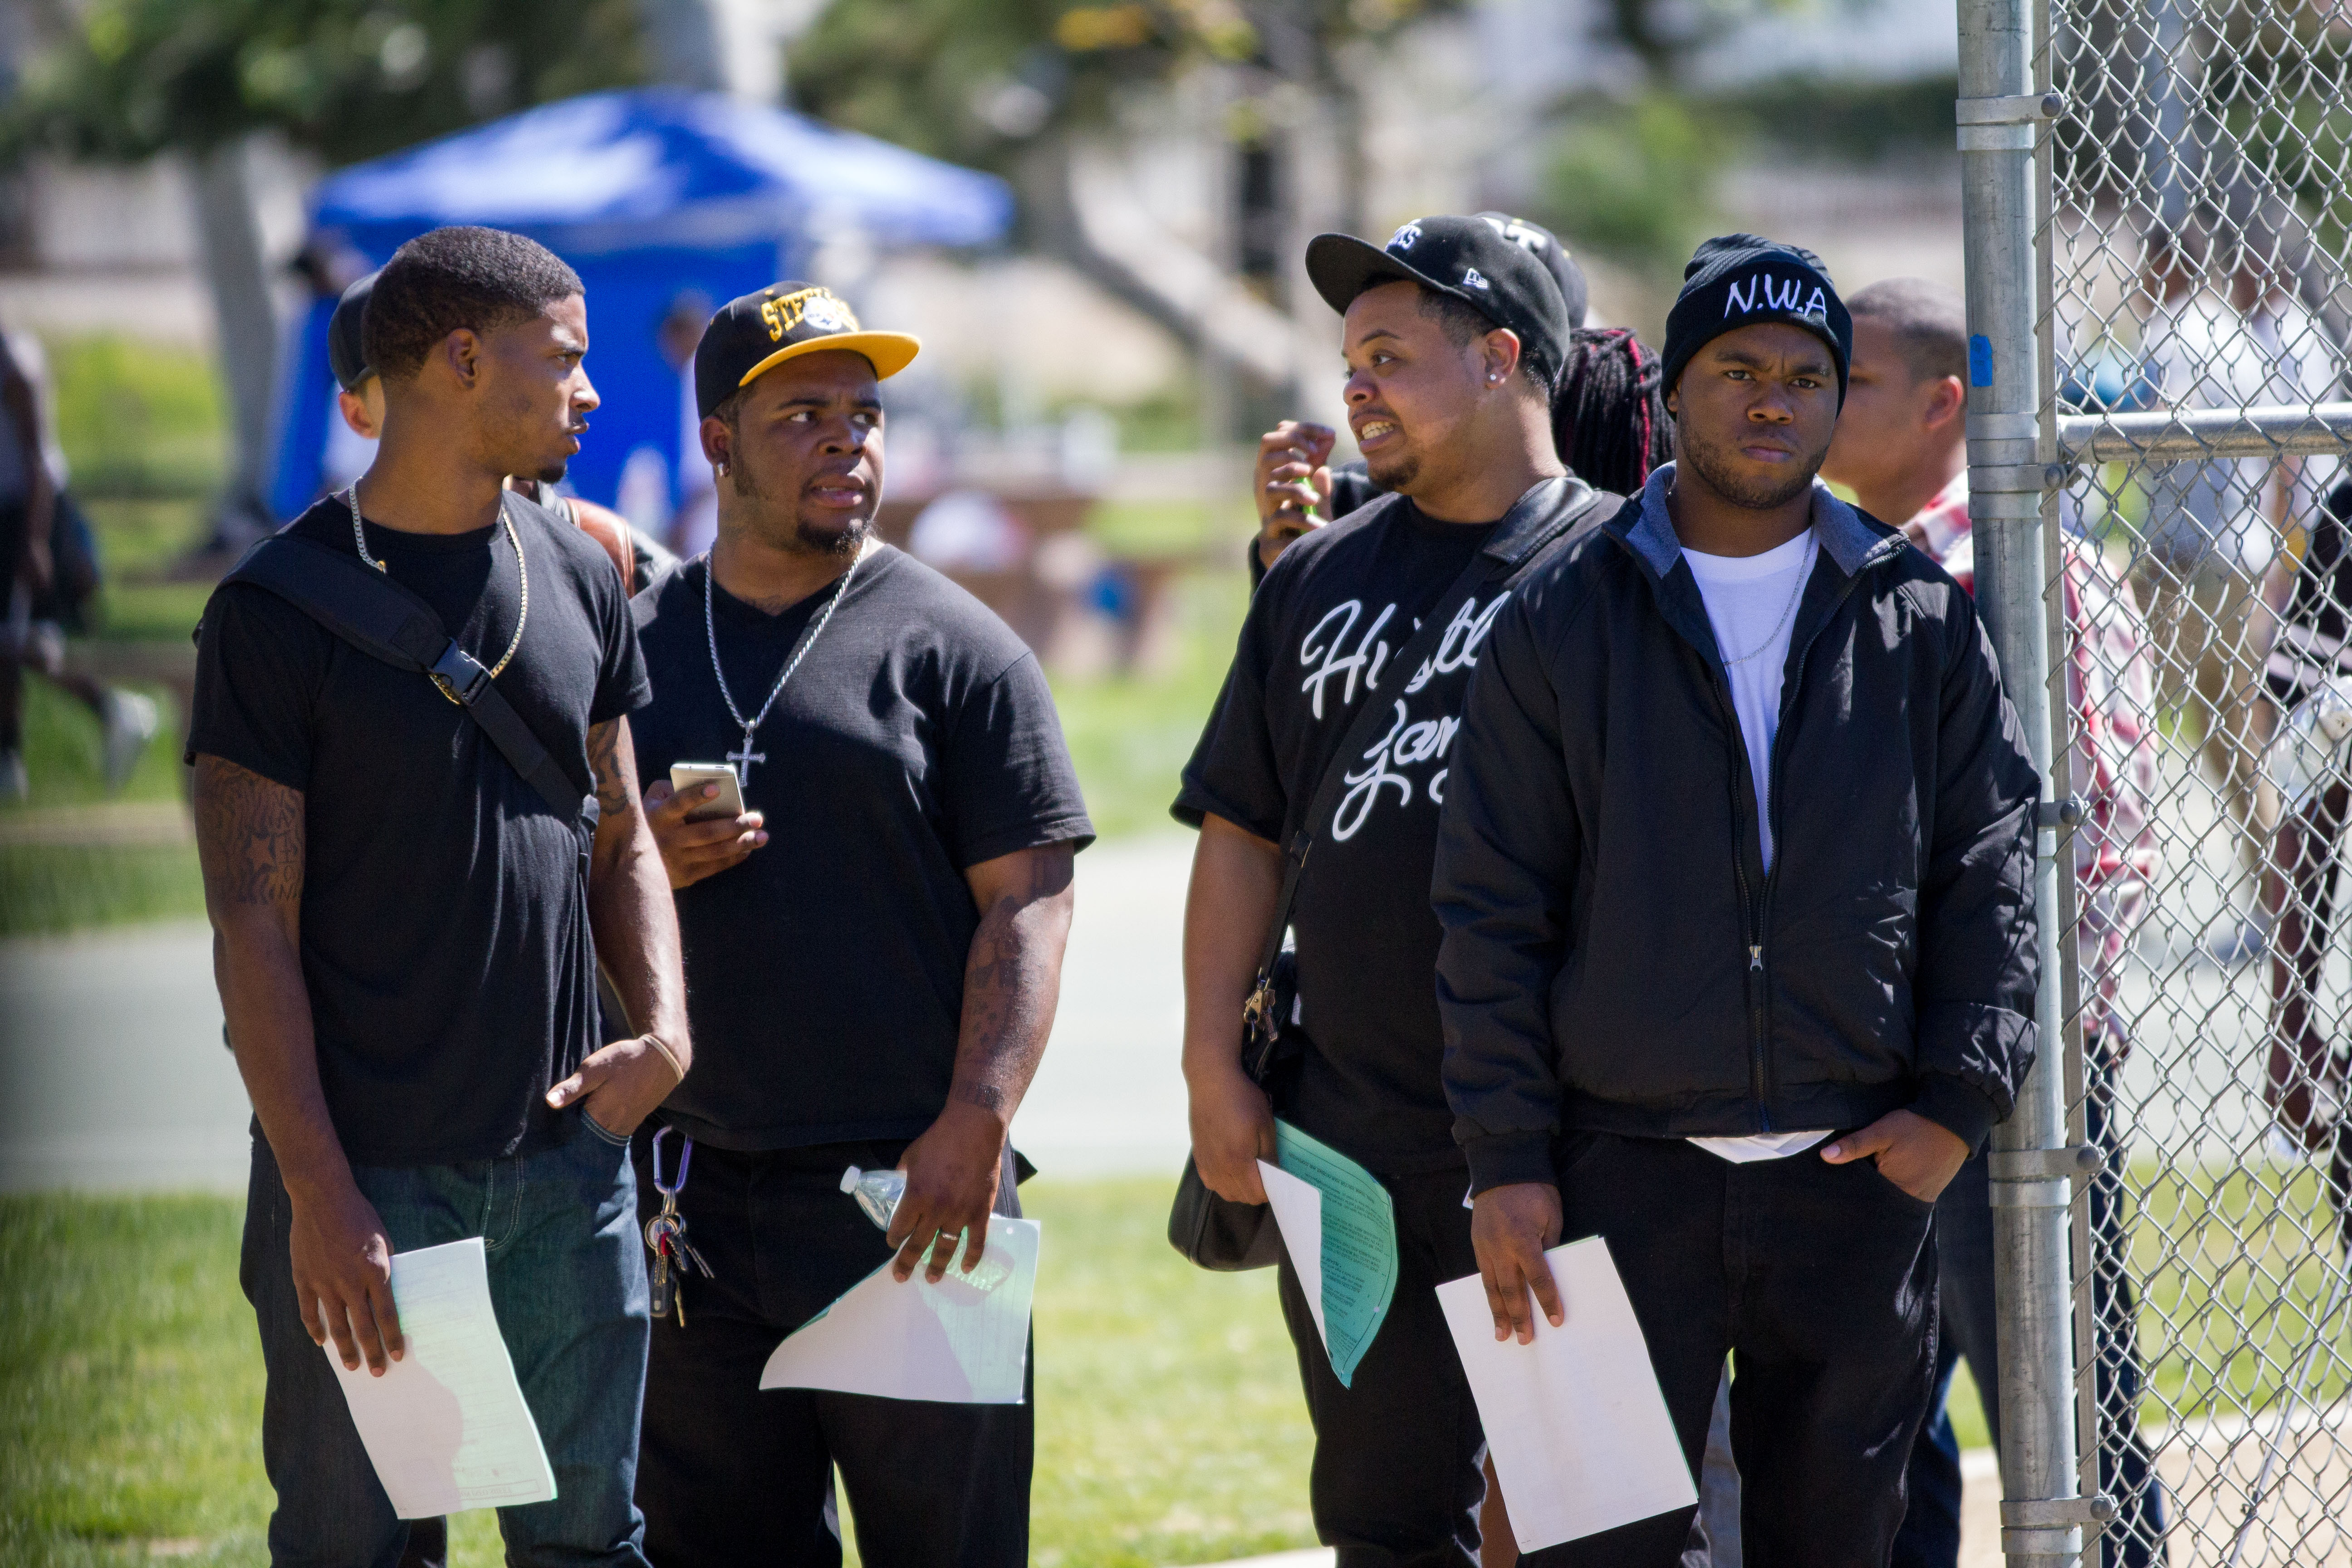 PHOTOS: Inside the 'Straight Outta Compton' movie casting ...